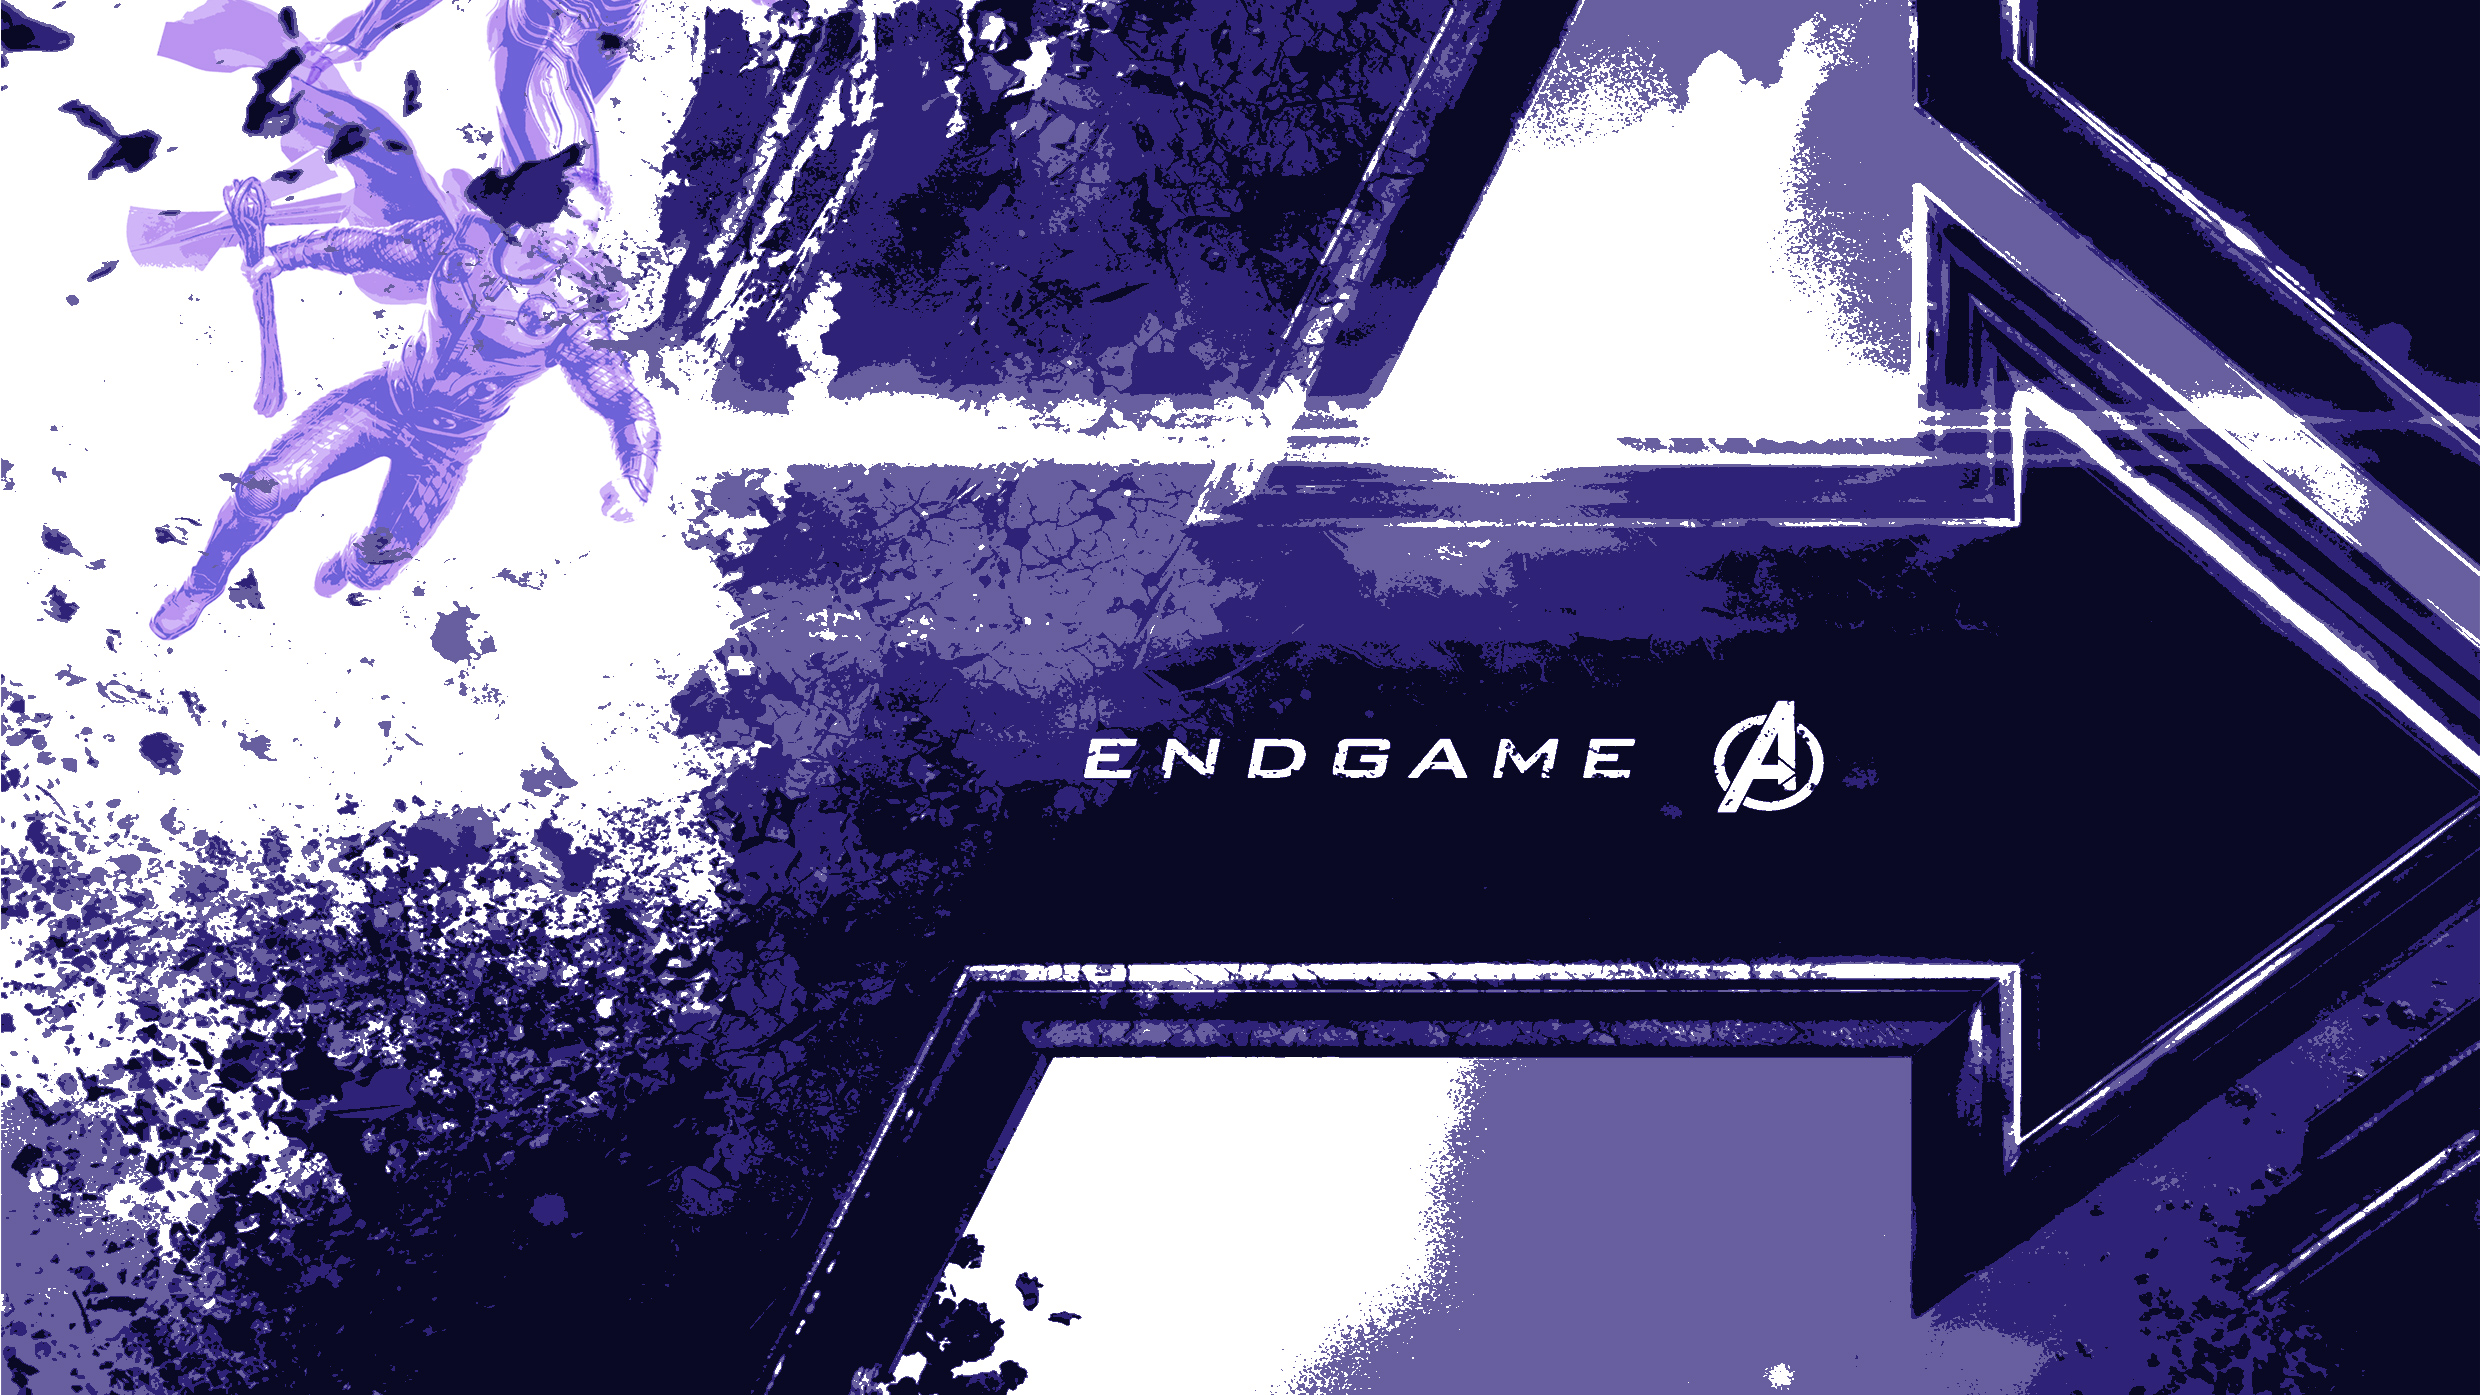 Avengers end game logo hd movies 4k wallpapers images - Avengers a logo 4k ...